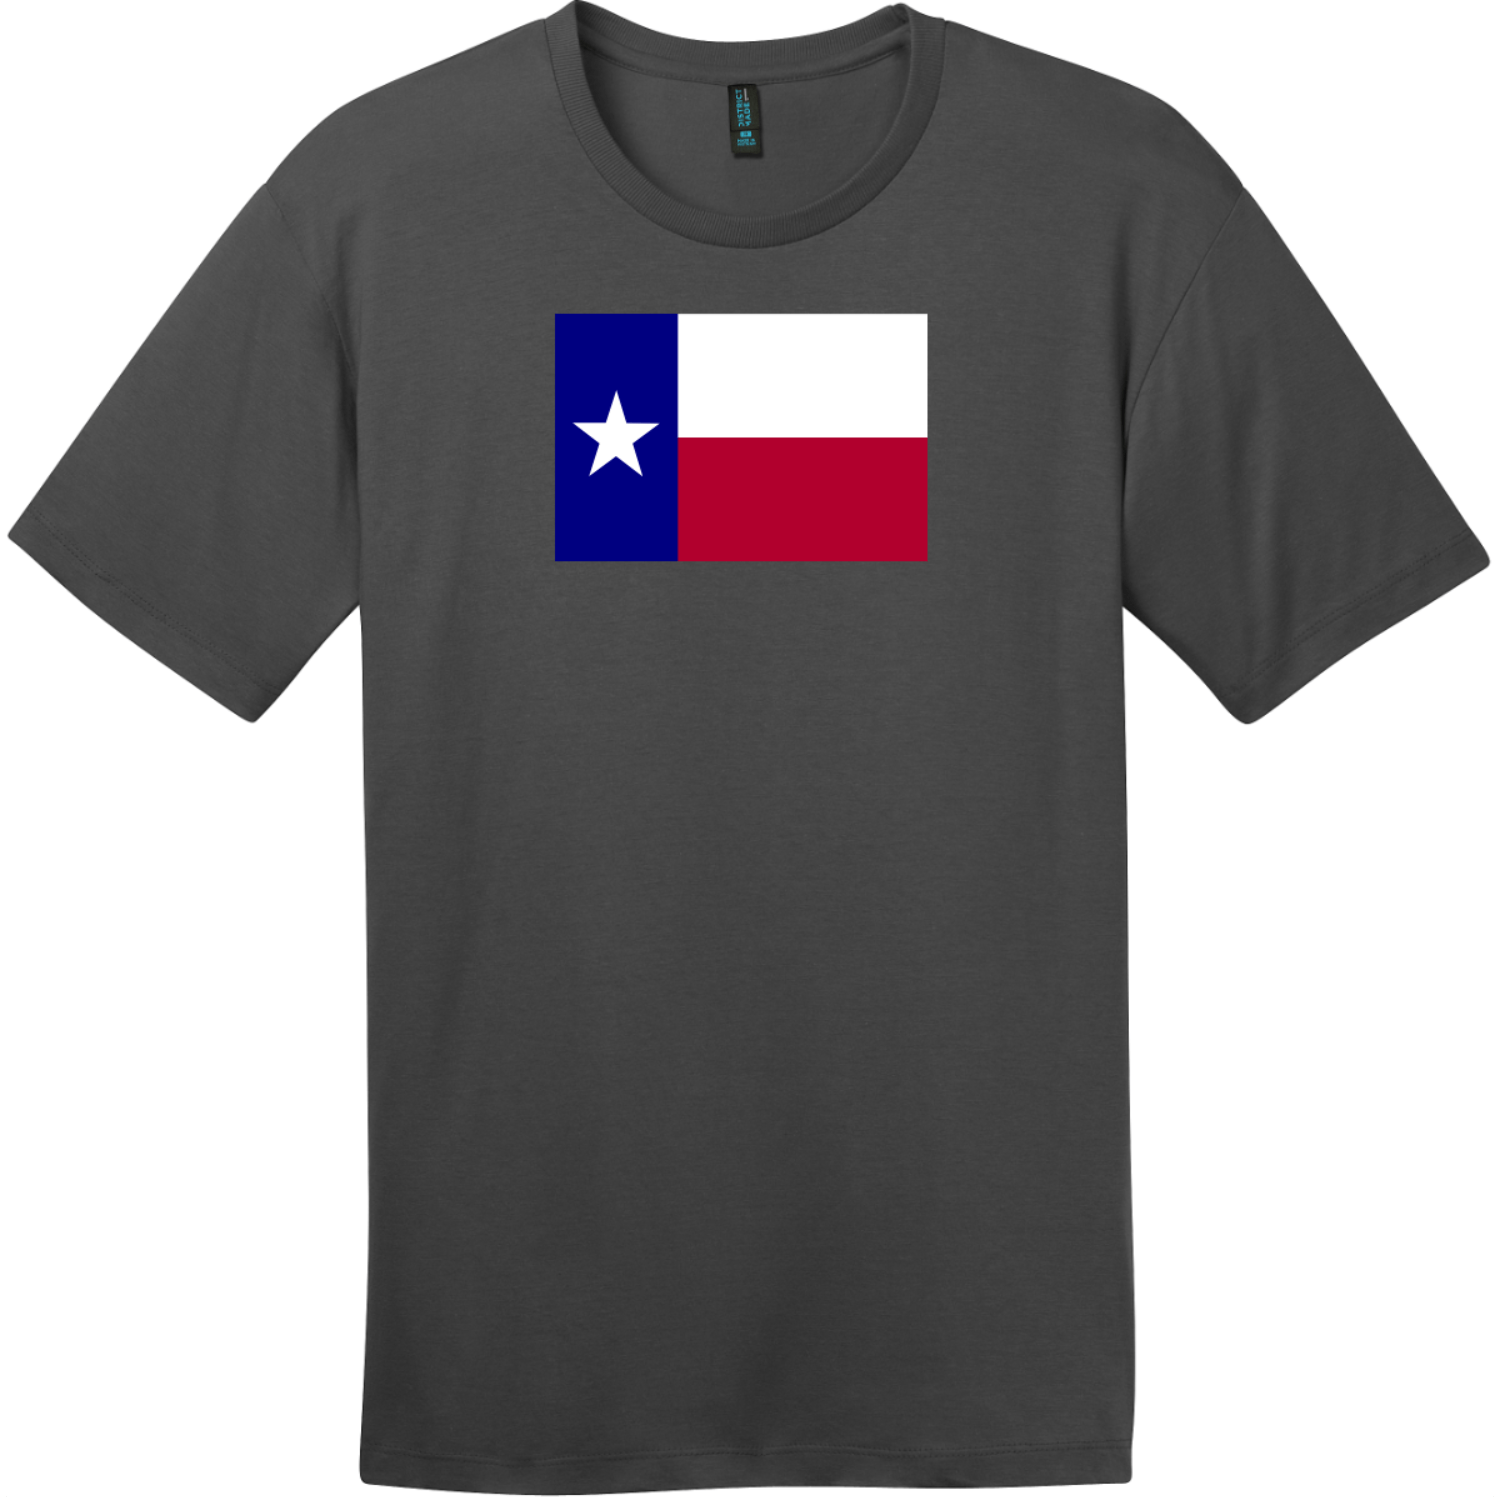 Texas Lone Star State Flag T-Shirt Charcoal District Perfect Weight Tee DT104